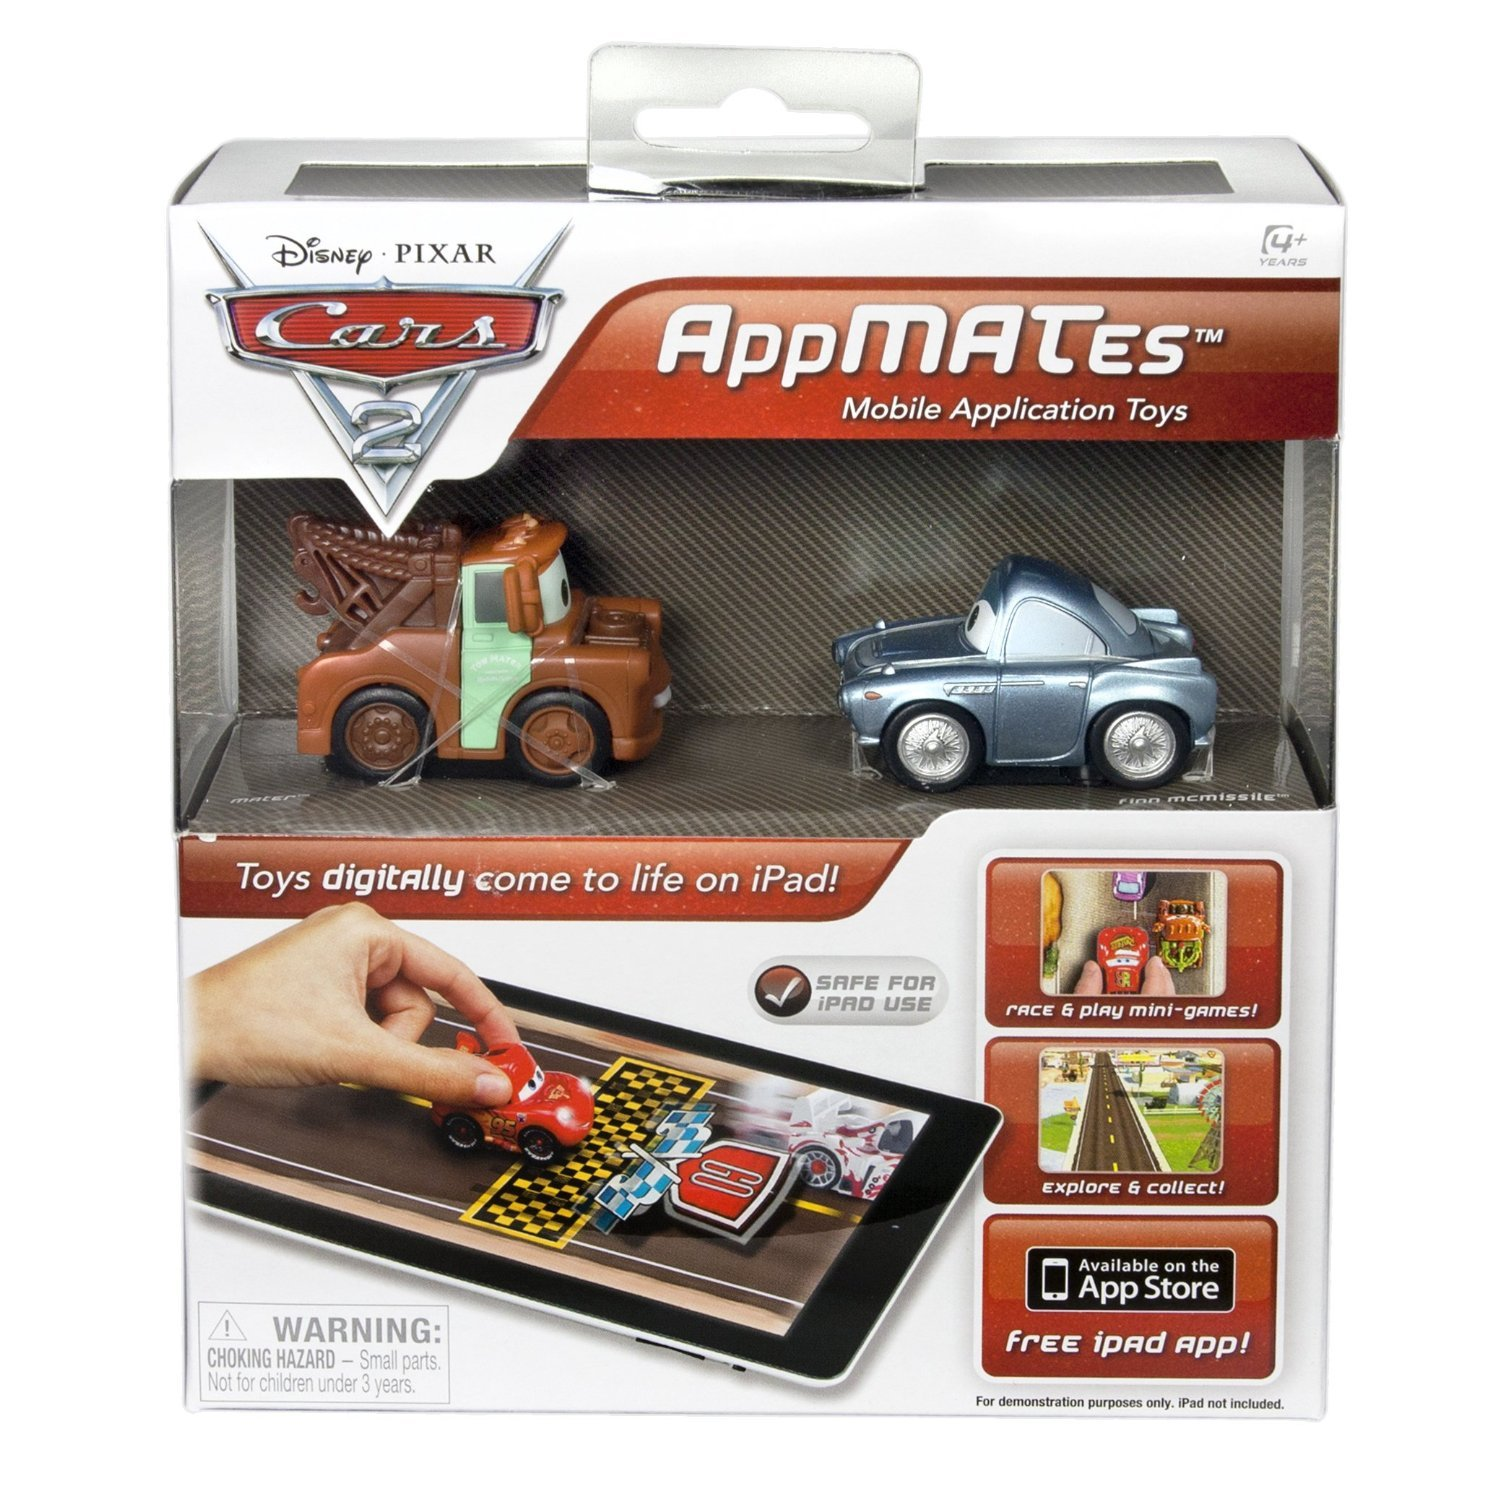 For Preschoolers: Disney Pixar Cars 2 AppMATes